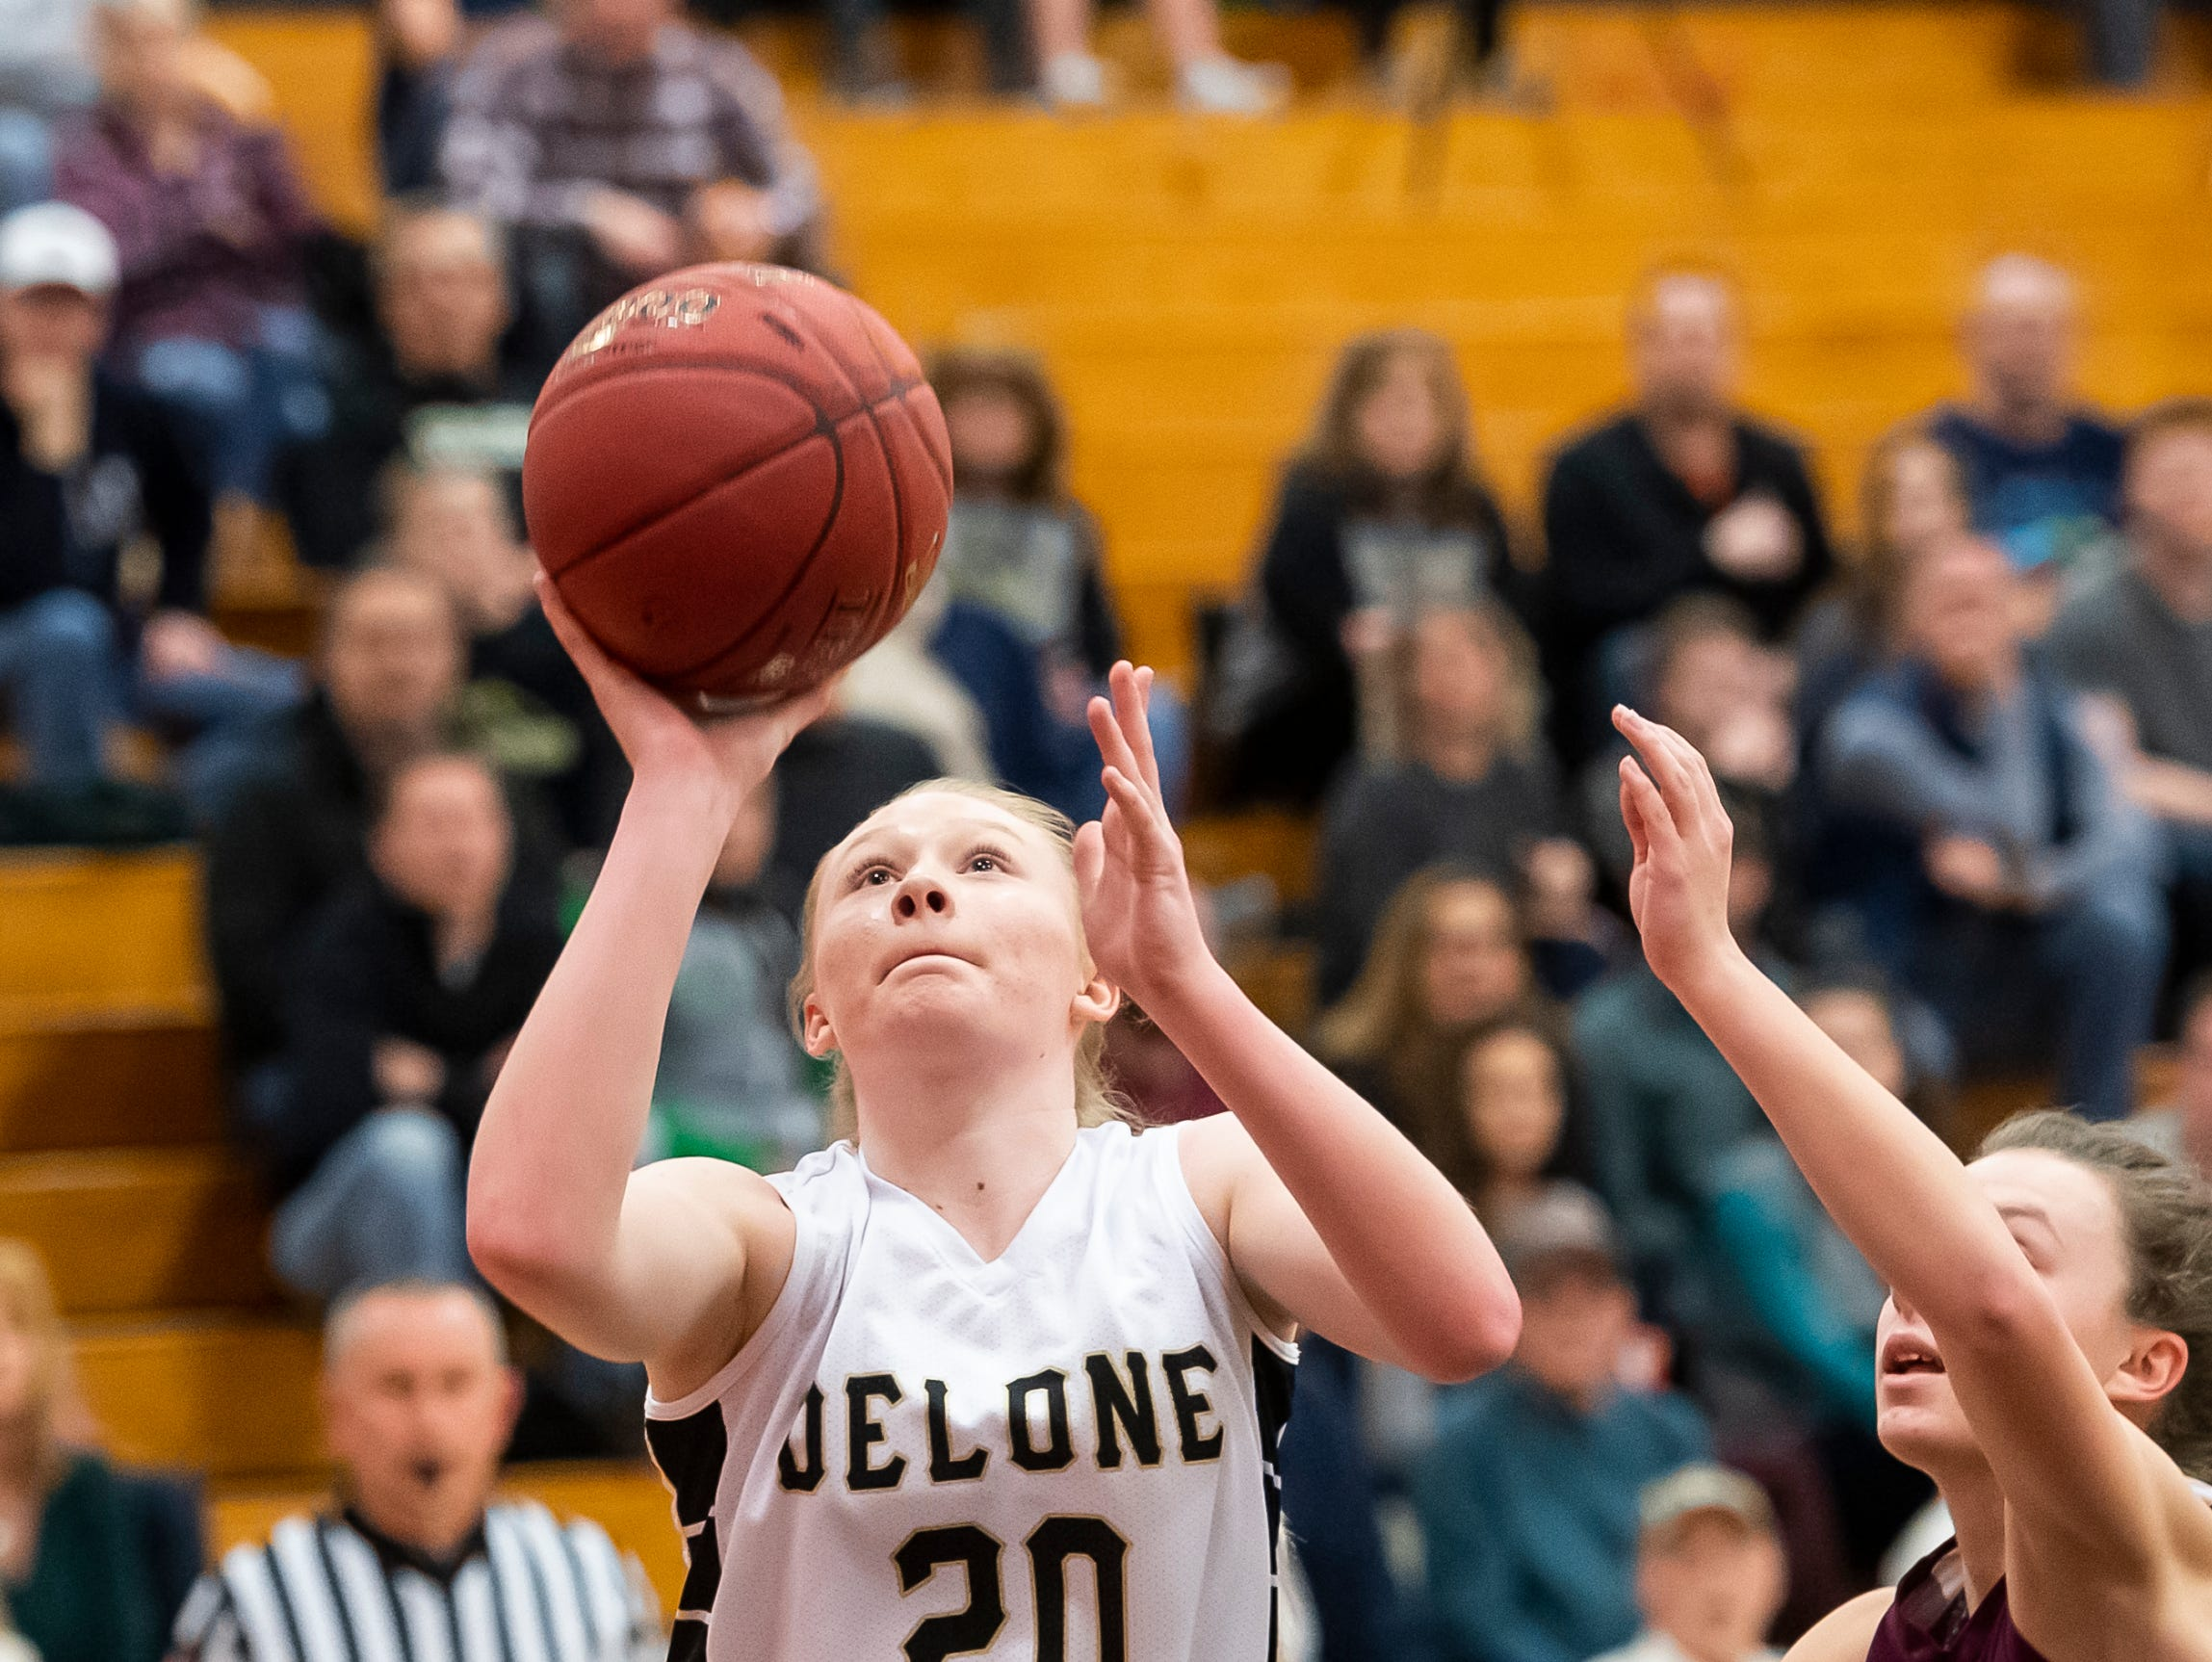 Delone Catholic's Brooke Lawyer scores on a layup during play against Gettysburg in a YAIAA quarterfinal game at Dover High School Friday, February 8, 2019.